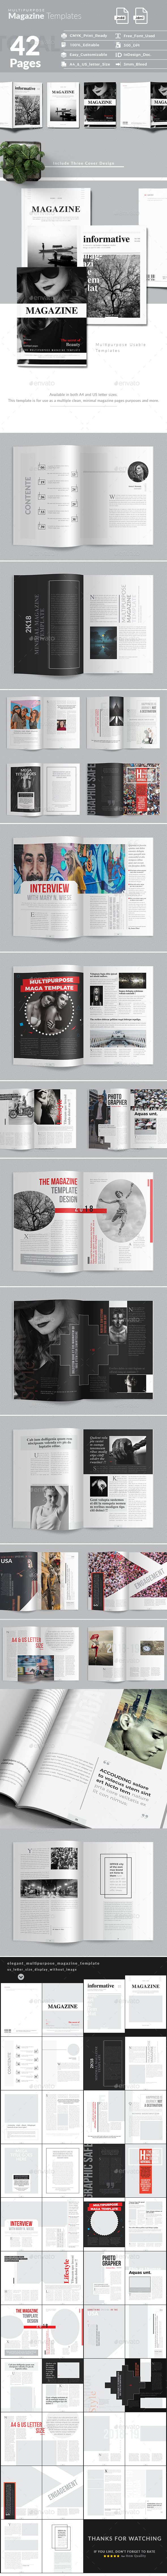 Multipurpose Magazine Template 42 Pages - Magazines Print Templates